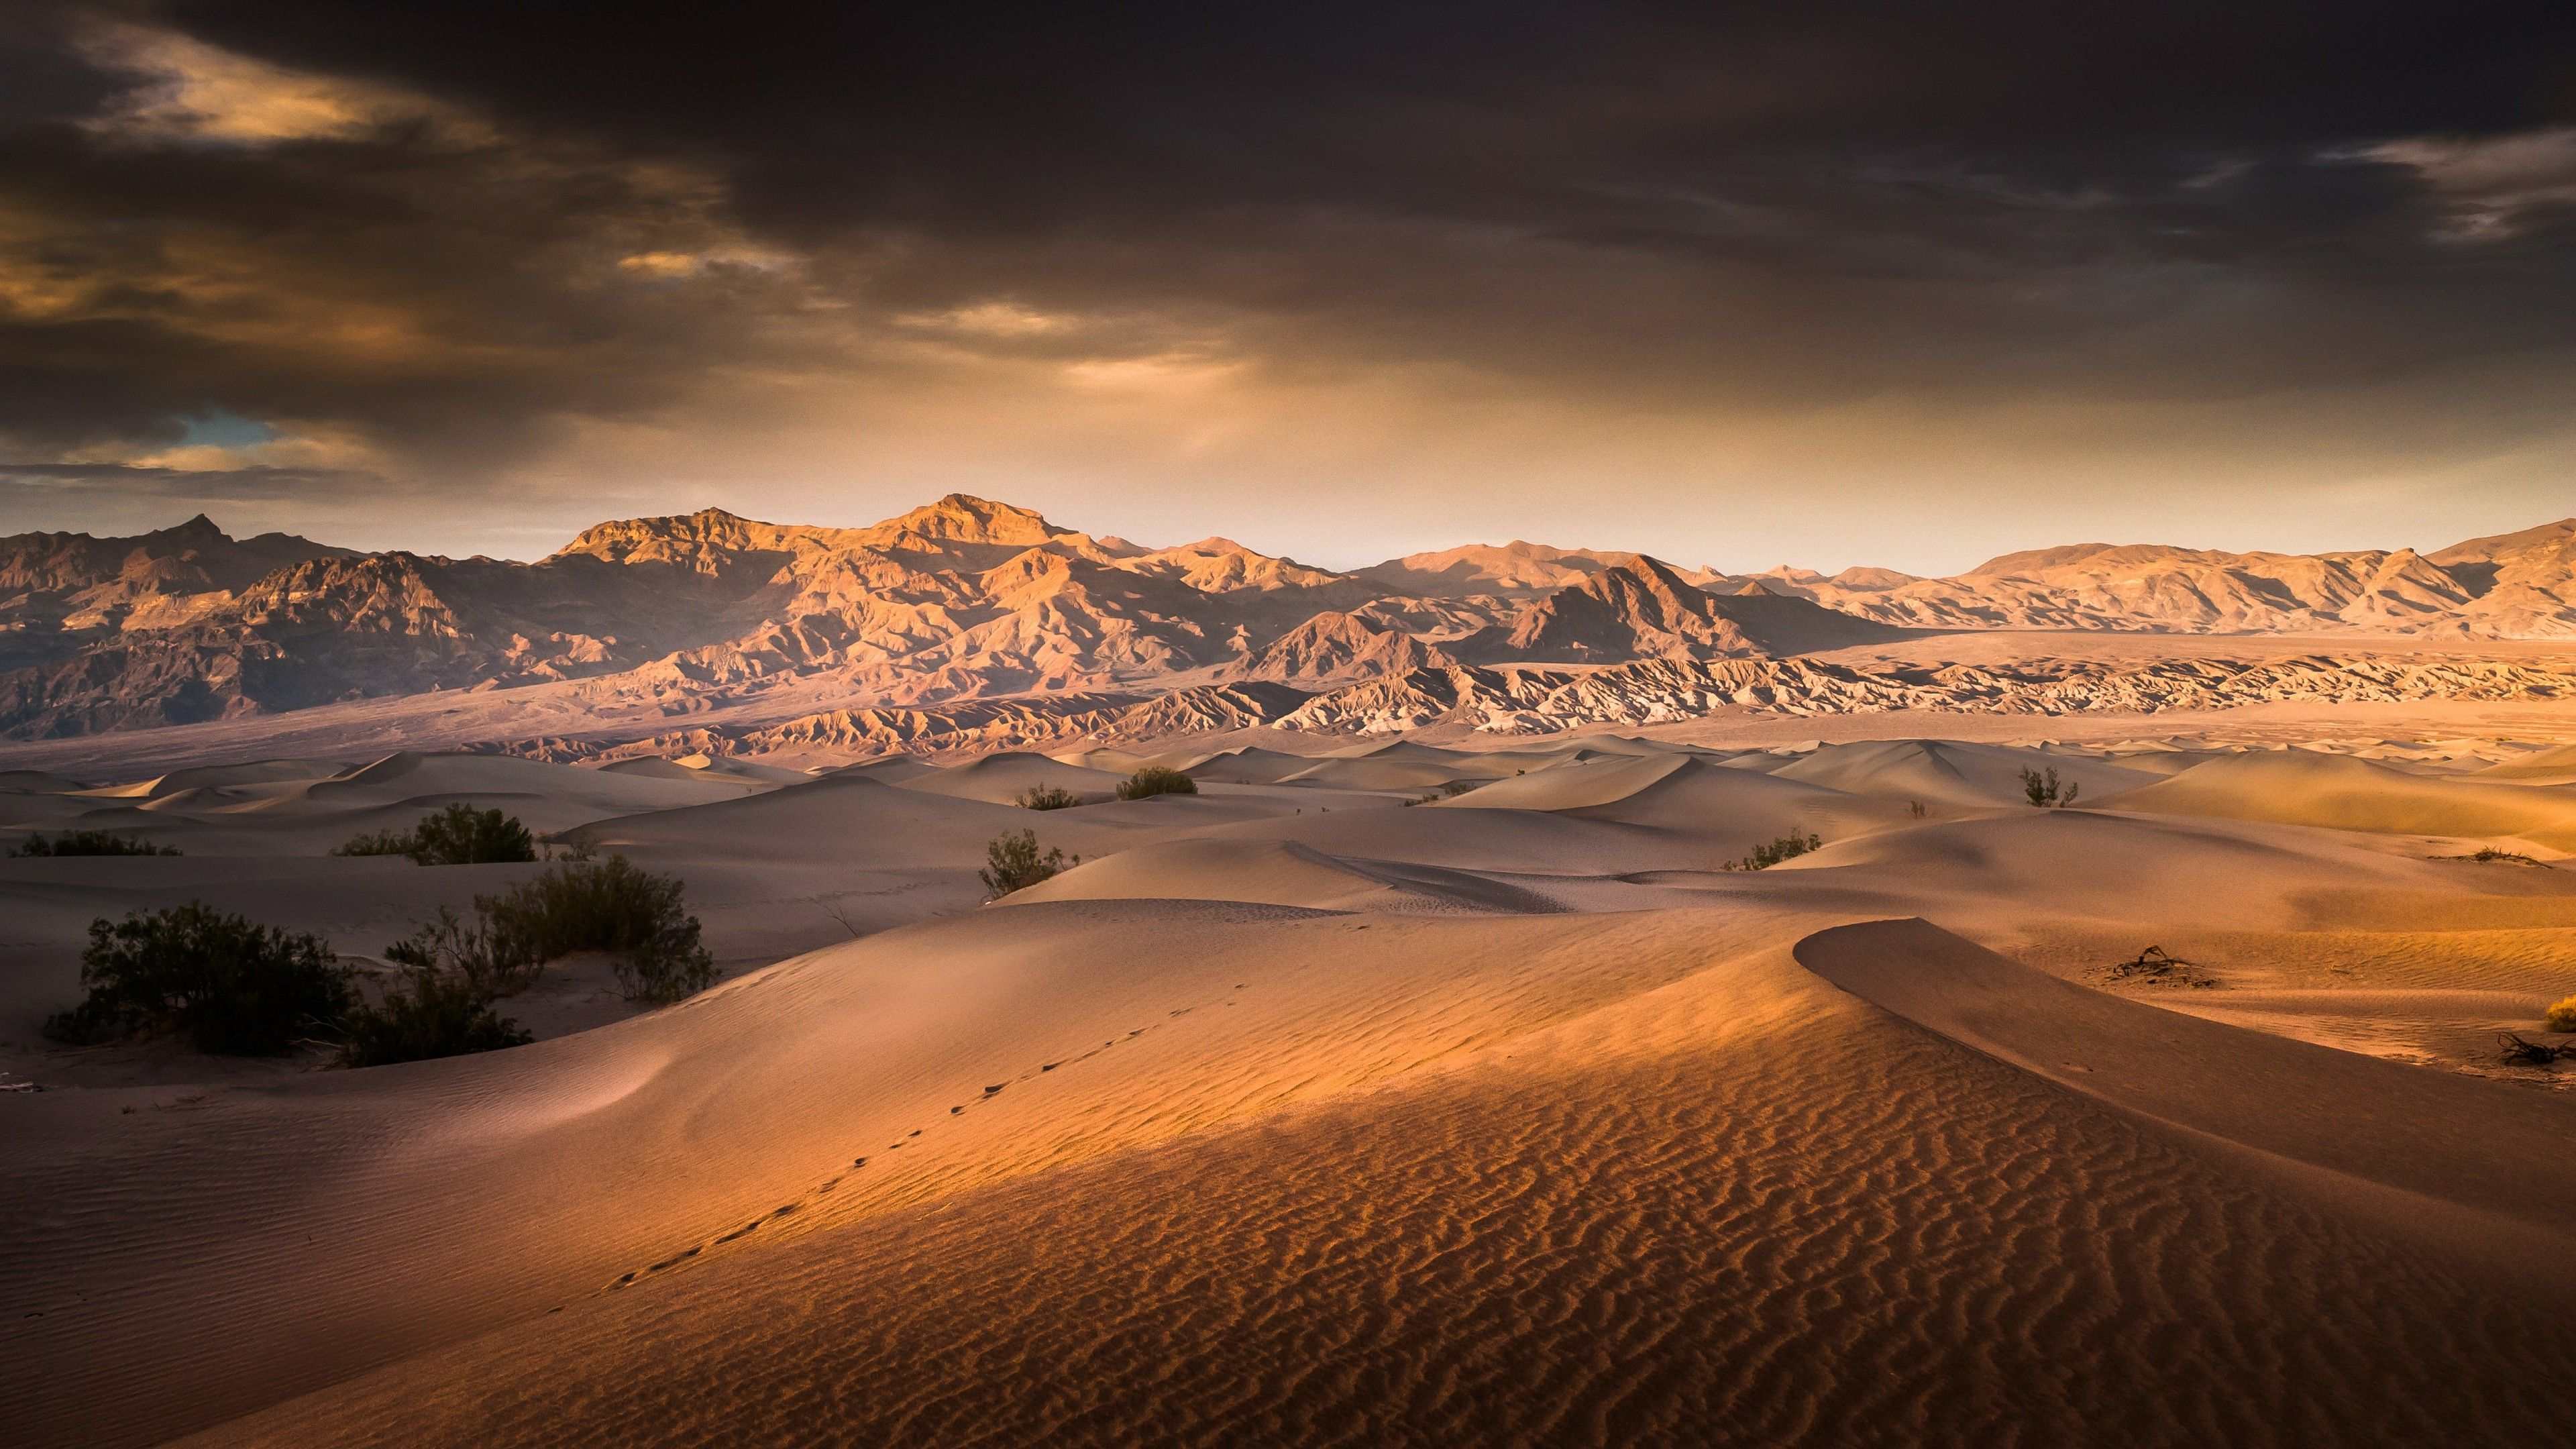 Sunrise Over The Mesquite Flat Sand Dunes